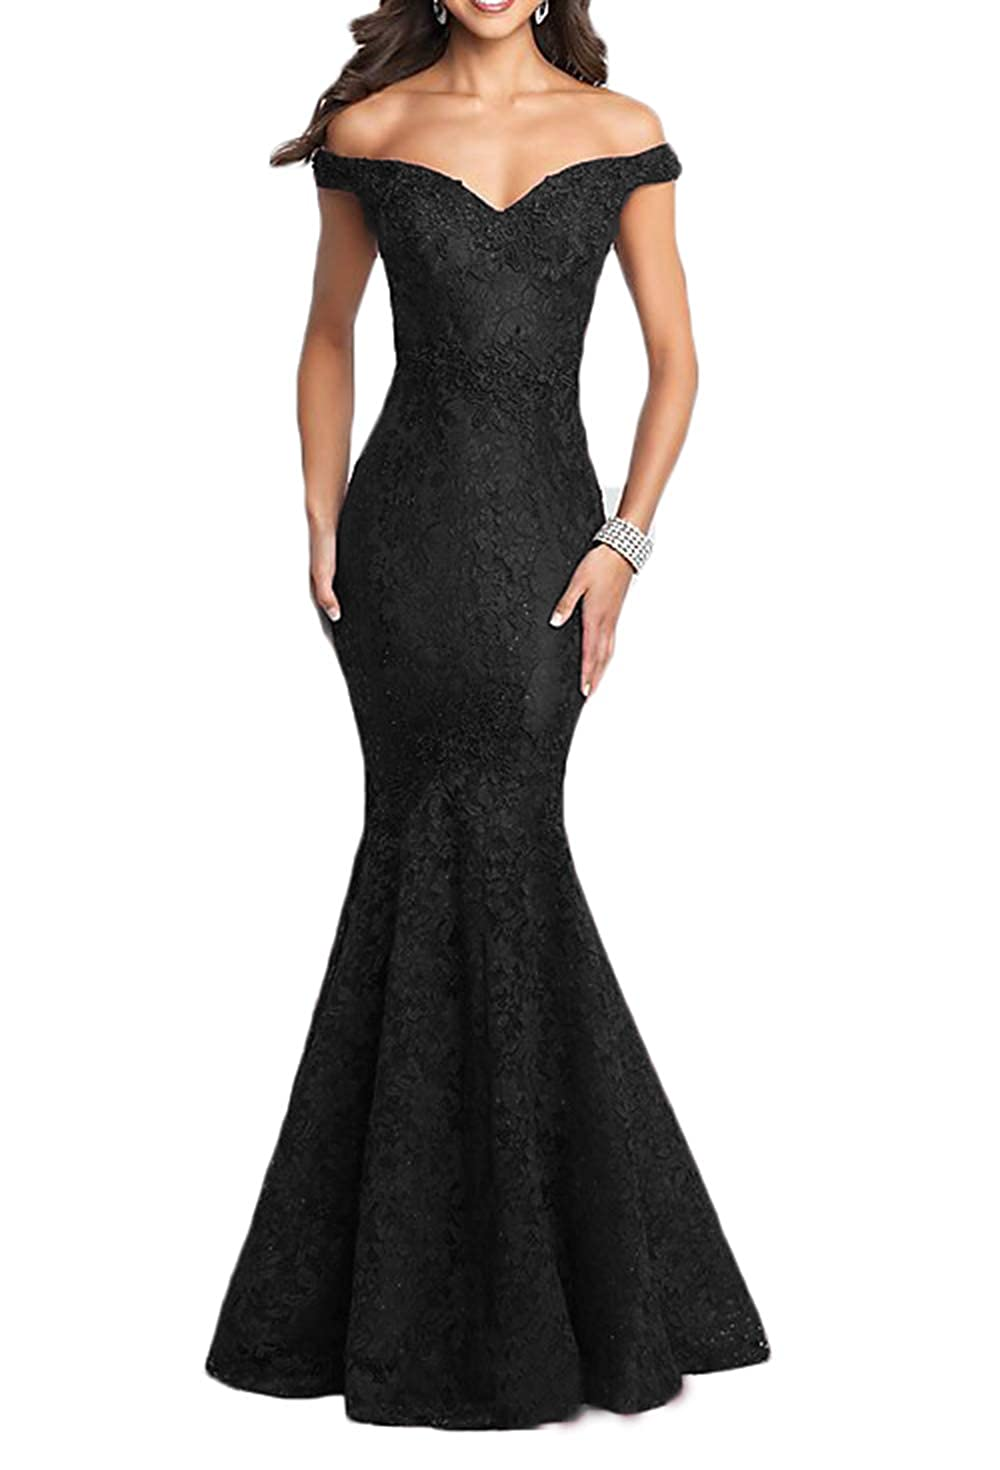 Black Ri Yun Elegant Off The Shoulder Lace Prom Dresses Long Mermaid Beaded Formal Evening Ball Gowns 2018